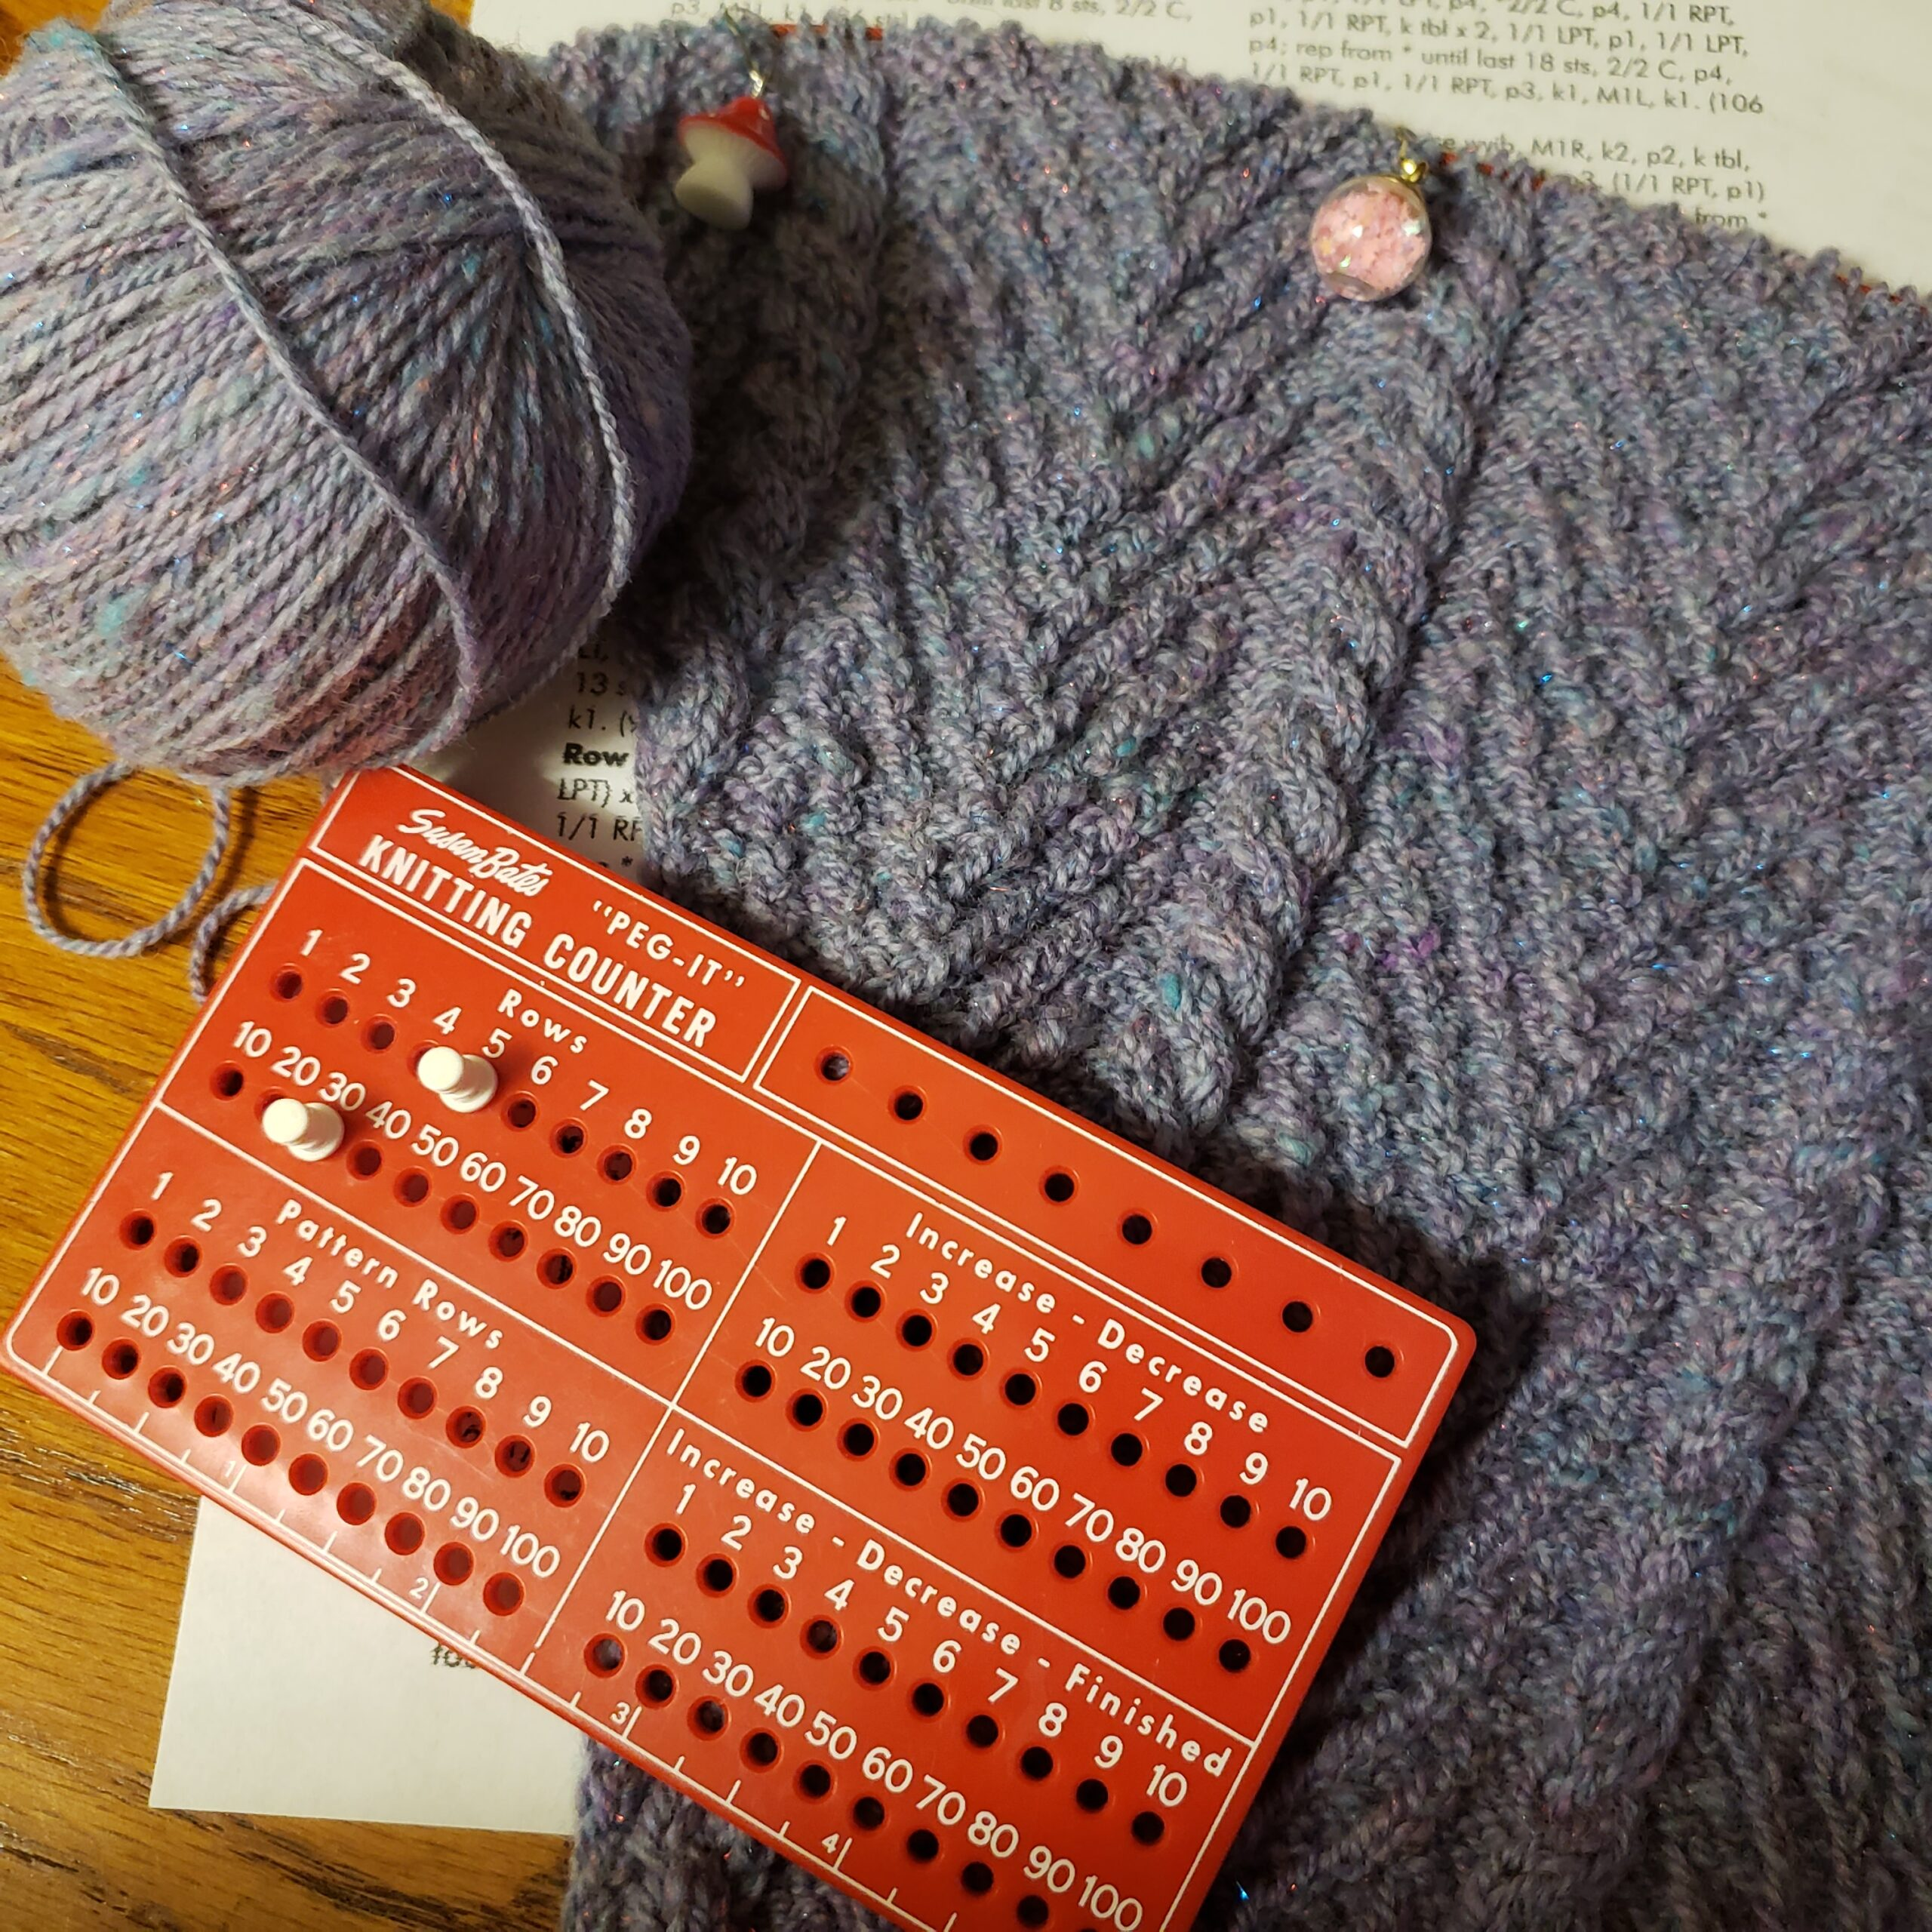 Handspun Yarn for a Knitting Project and an Interview with Aroha Knits